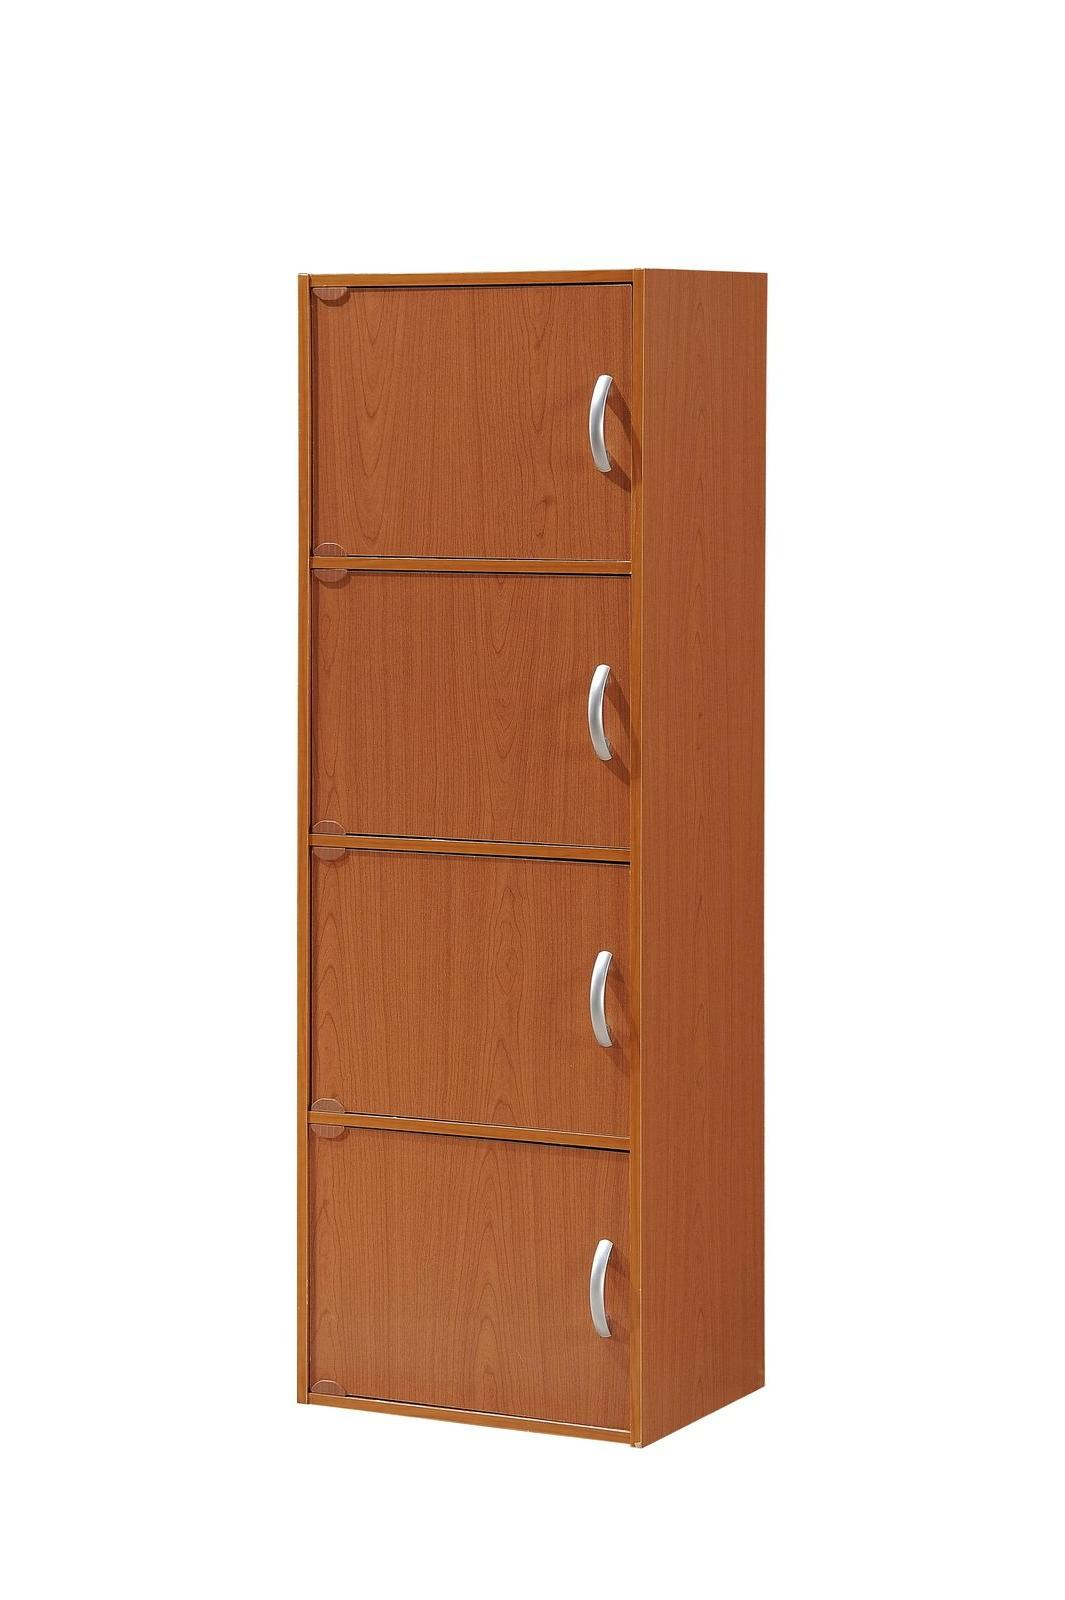 4-Door Tall Home Office Storage Clothes Garment